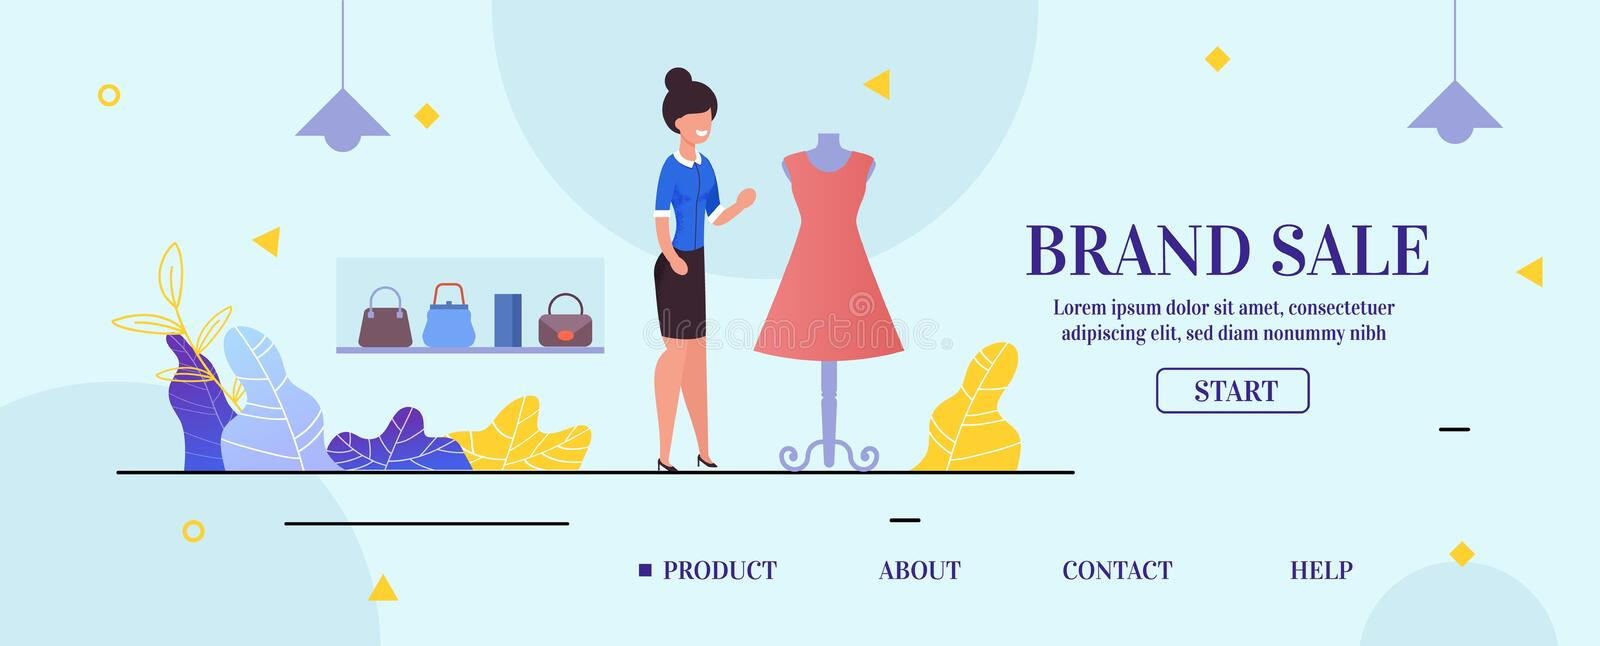 Landing Page Presenting Clothing Store Brand Sale. Landing Page Presenting Fashion Clothing Store Brand Sale. Friendly Smiling Saleswoman Offering Elegant Dress royalty free illustration